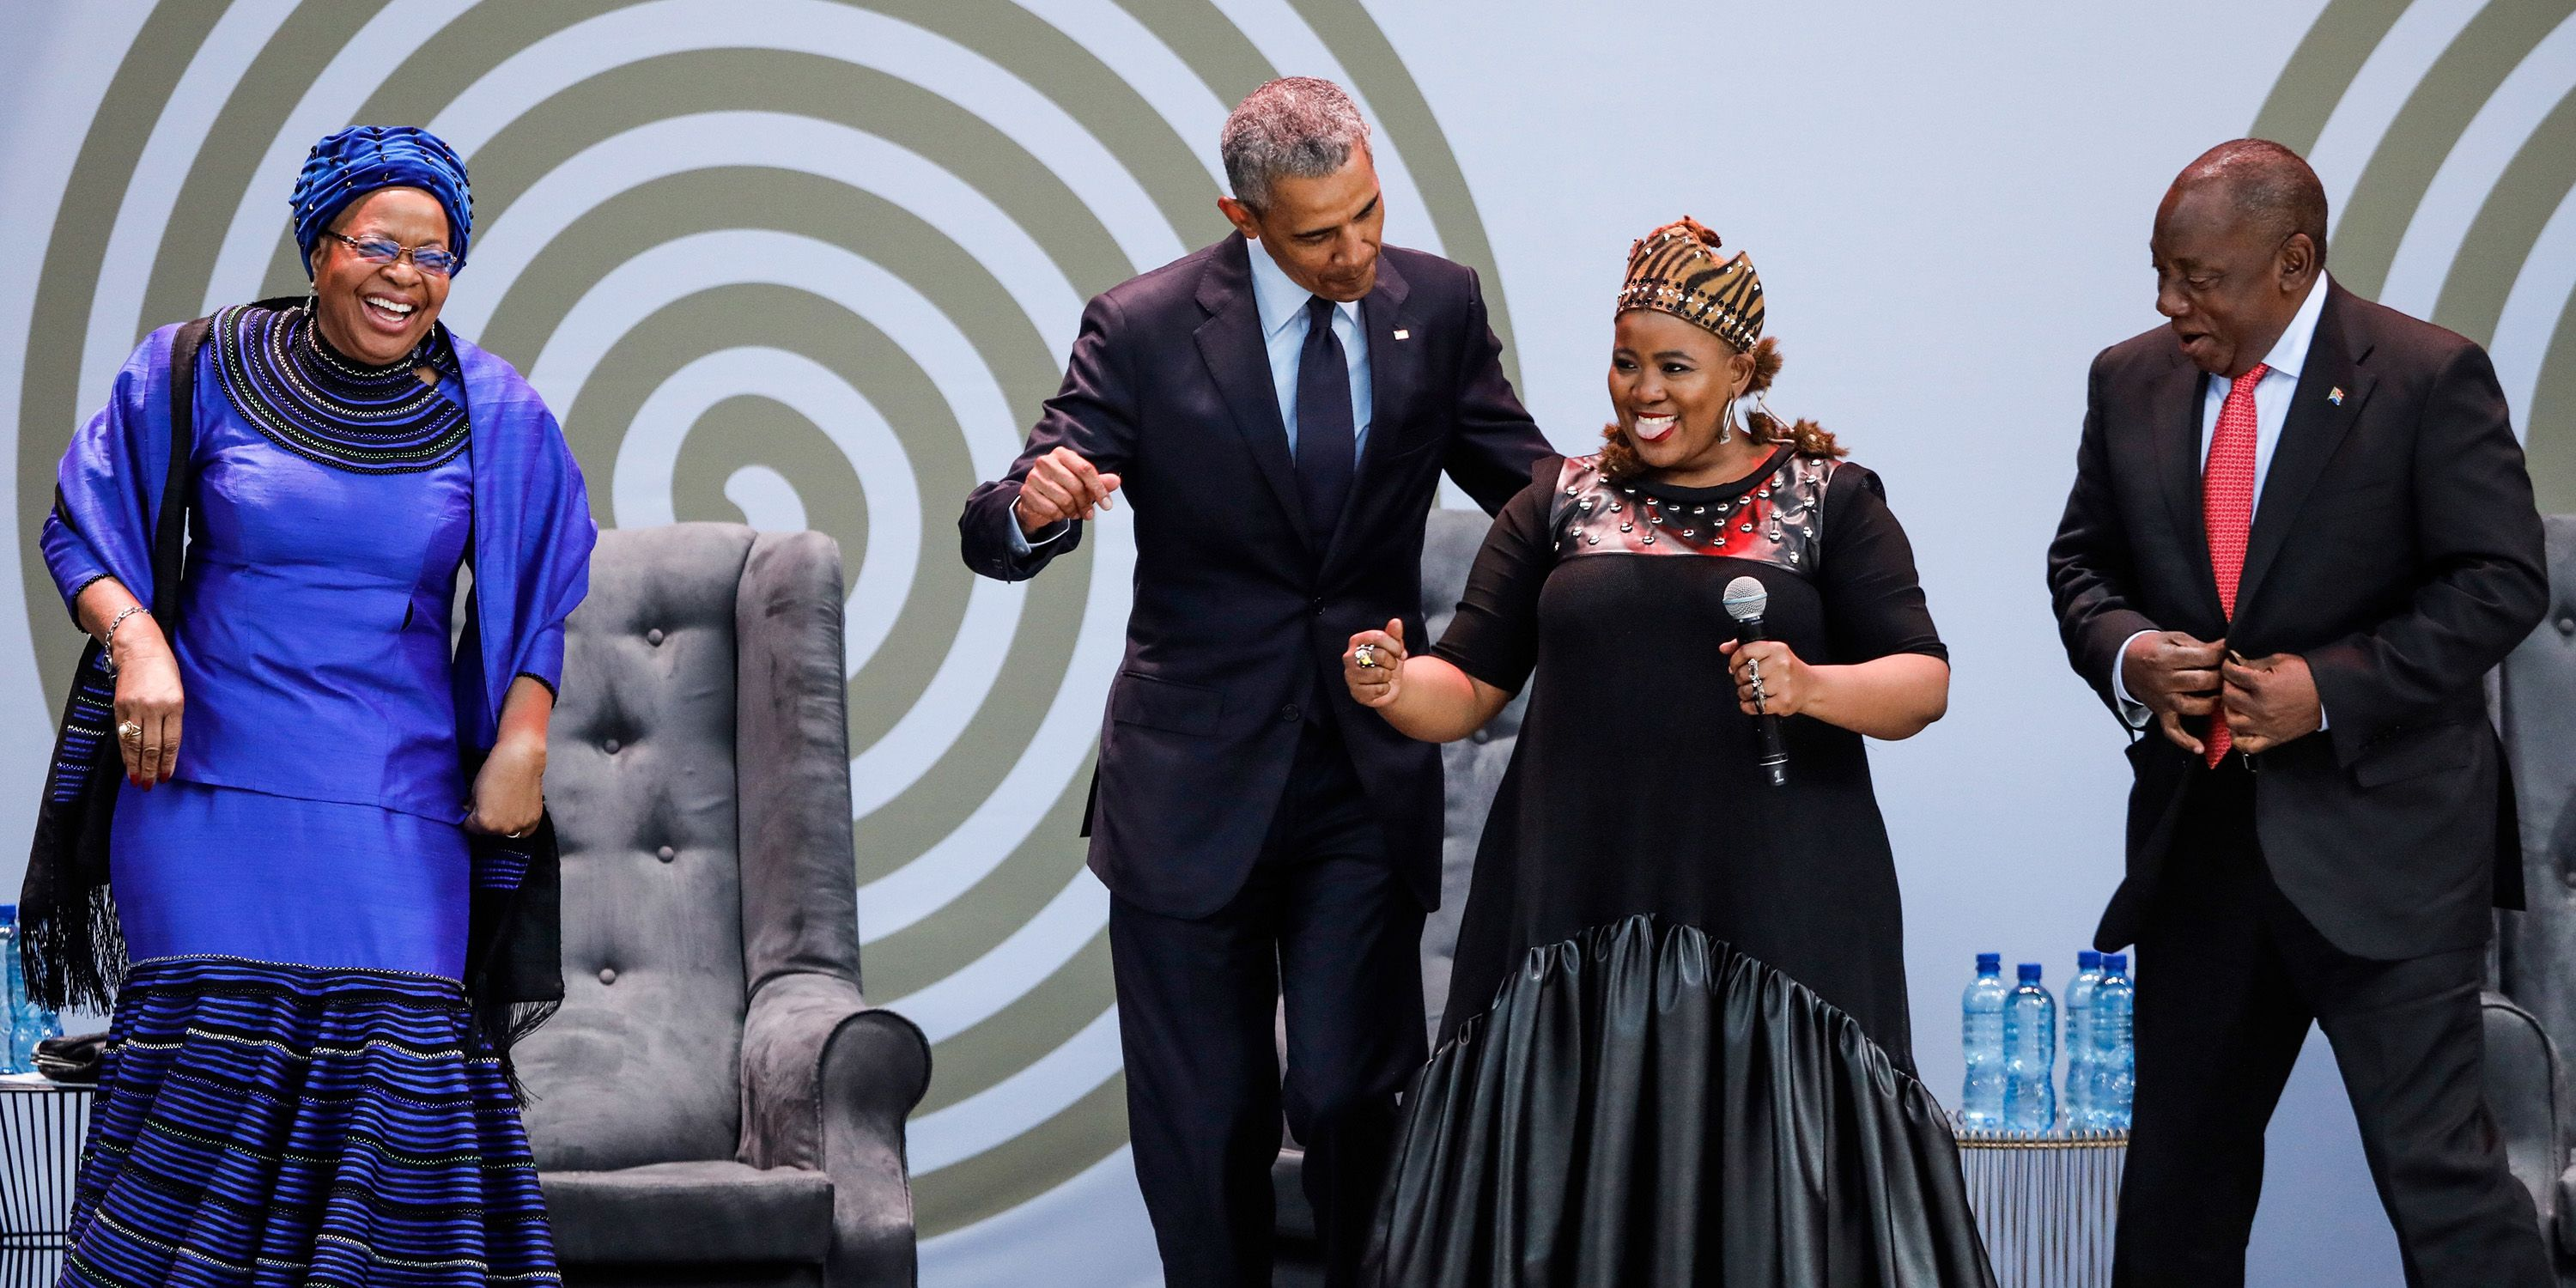 Barack Obama Dancing in Kenya Is Exactly What Your Week Needs